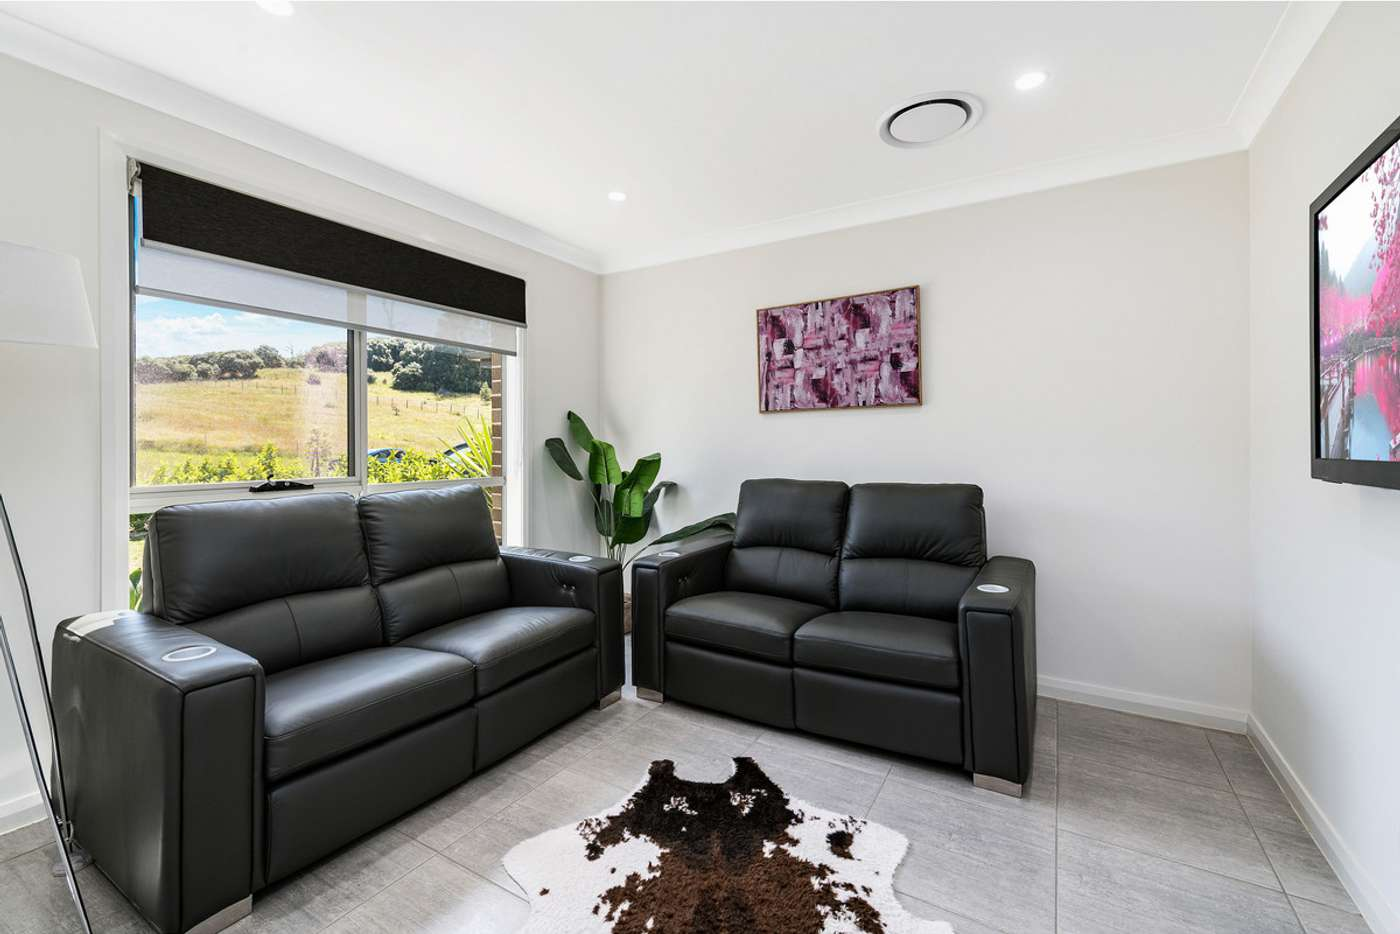 Sixth view of Homely house listing, 38 Wainwright Drive, Cobbitty NSW 2570